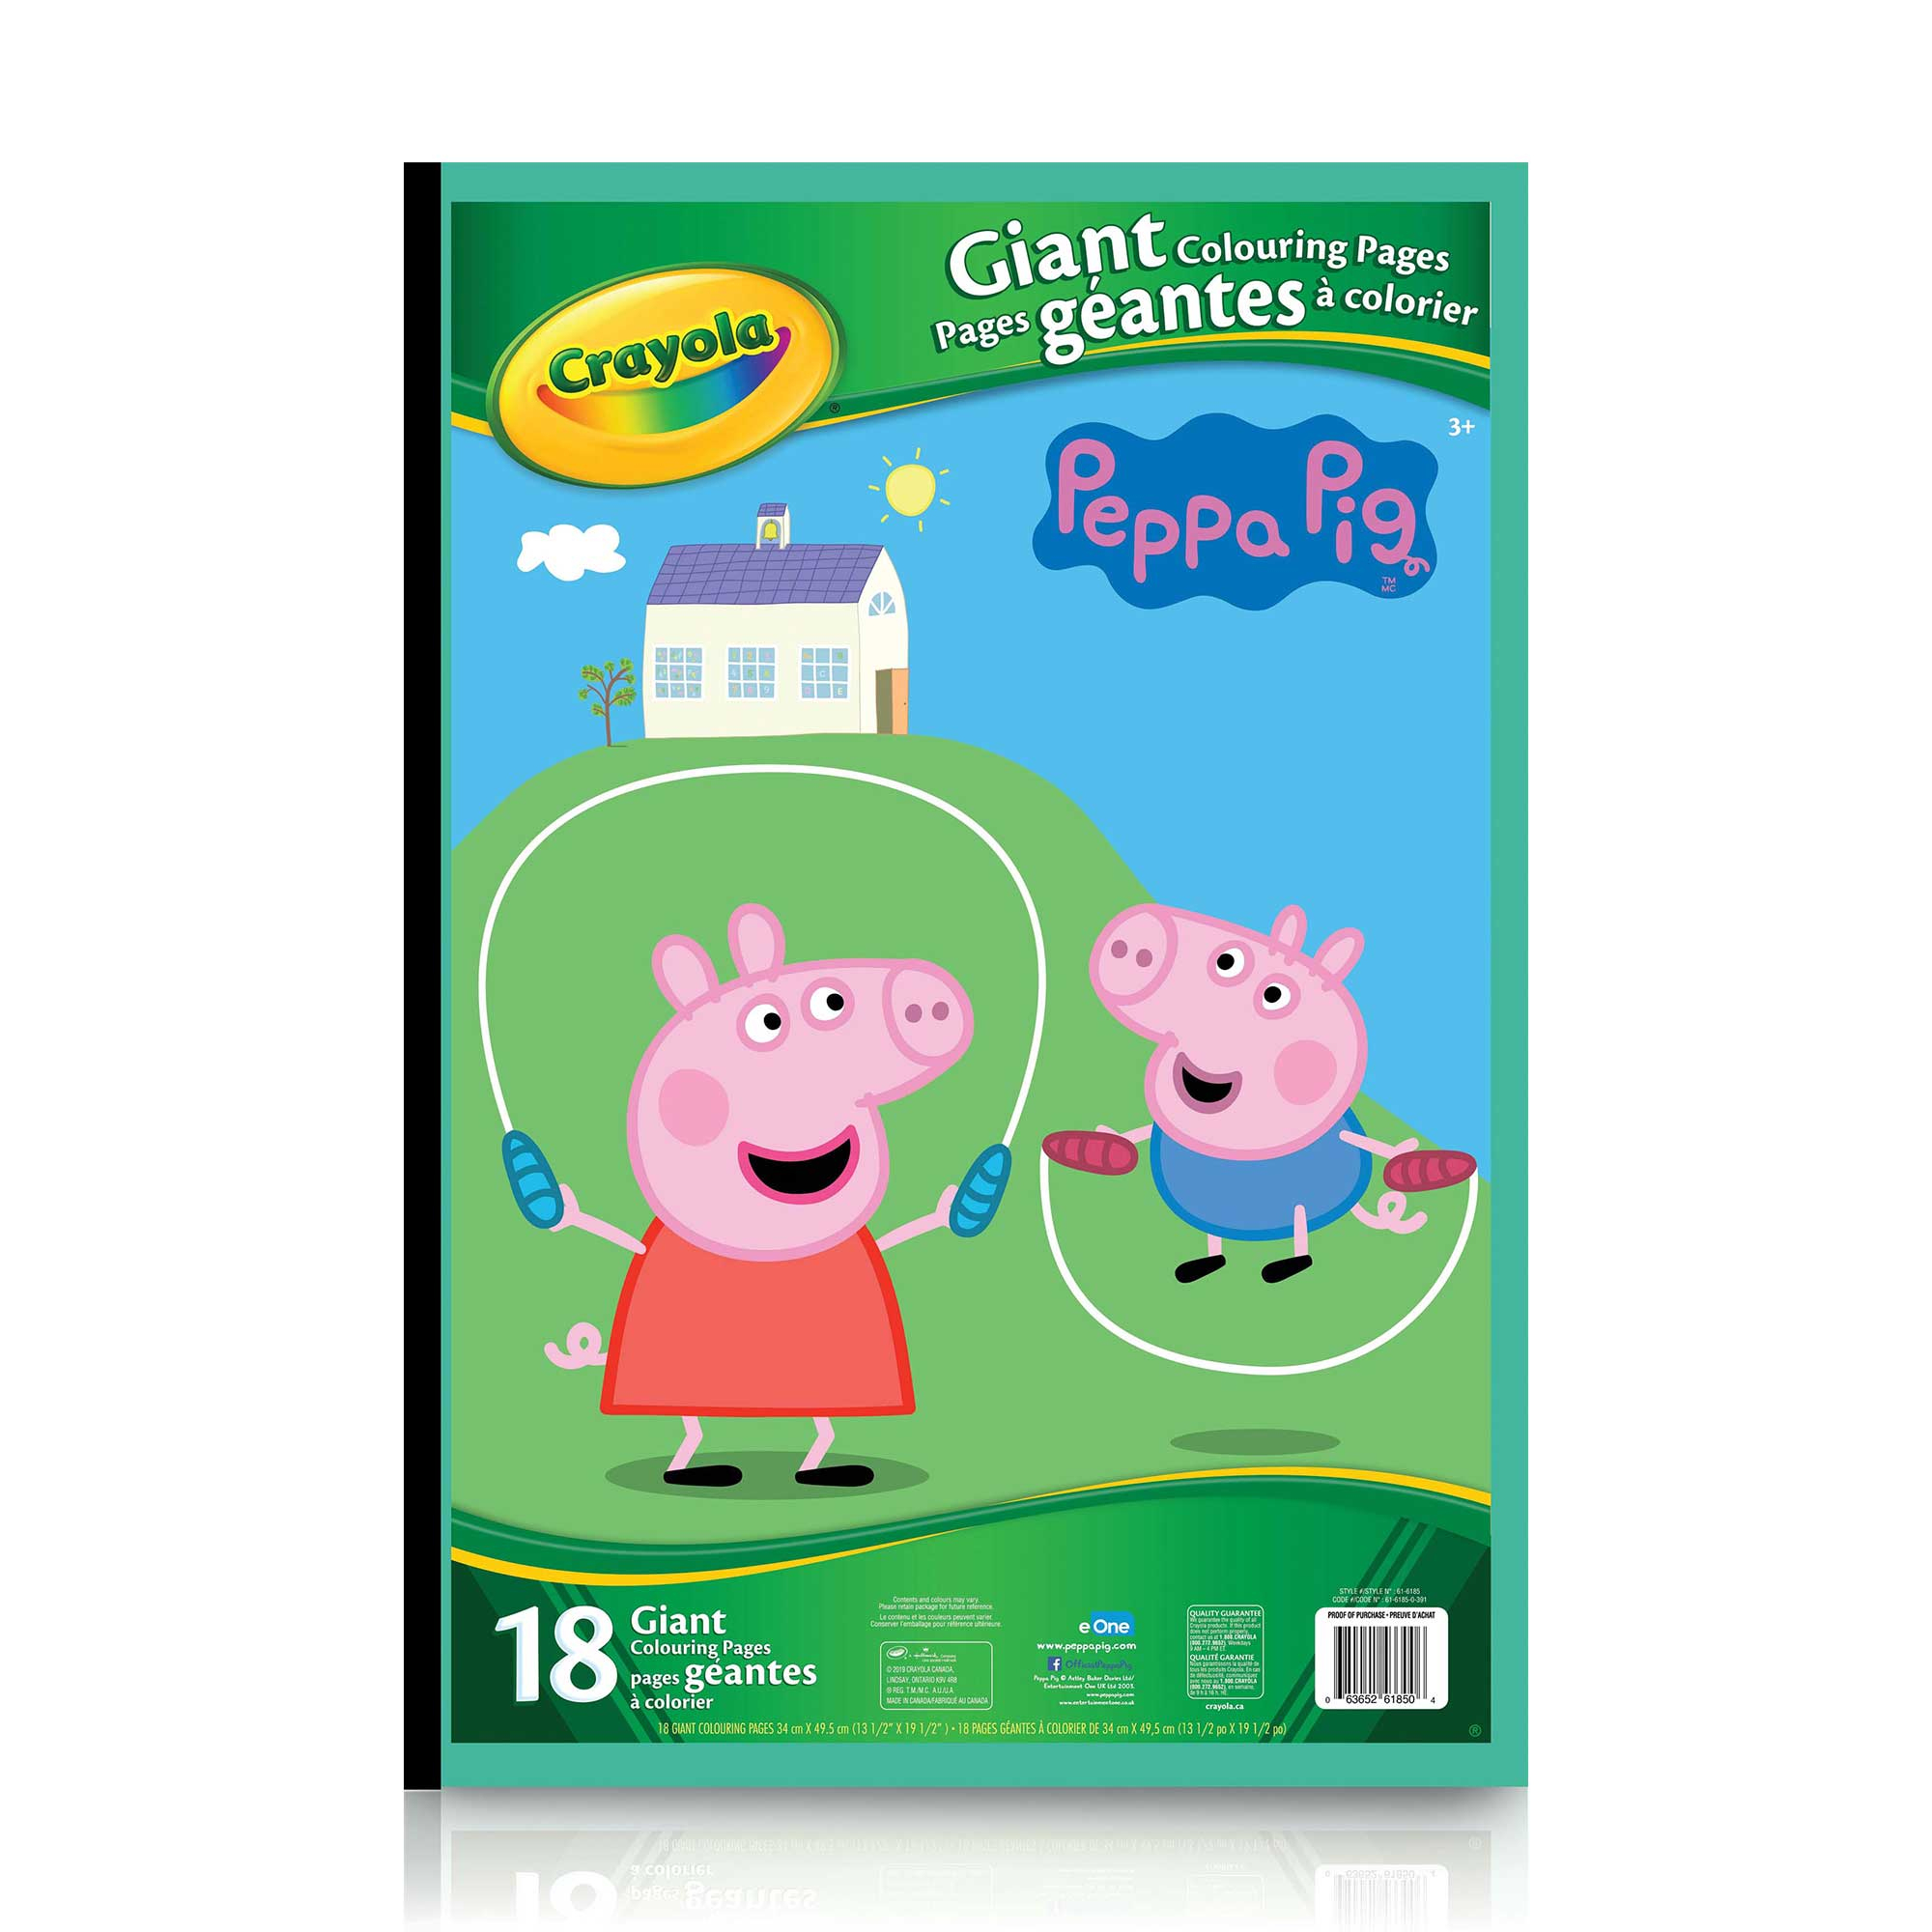 Giant Colouring Pages, Peppa Pig avec Peppa Pig A Colorier